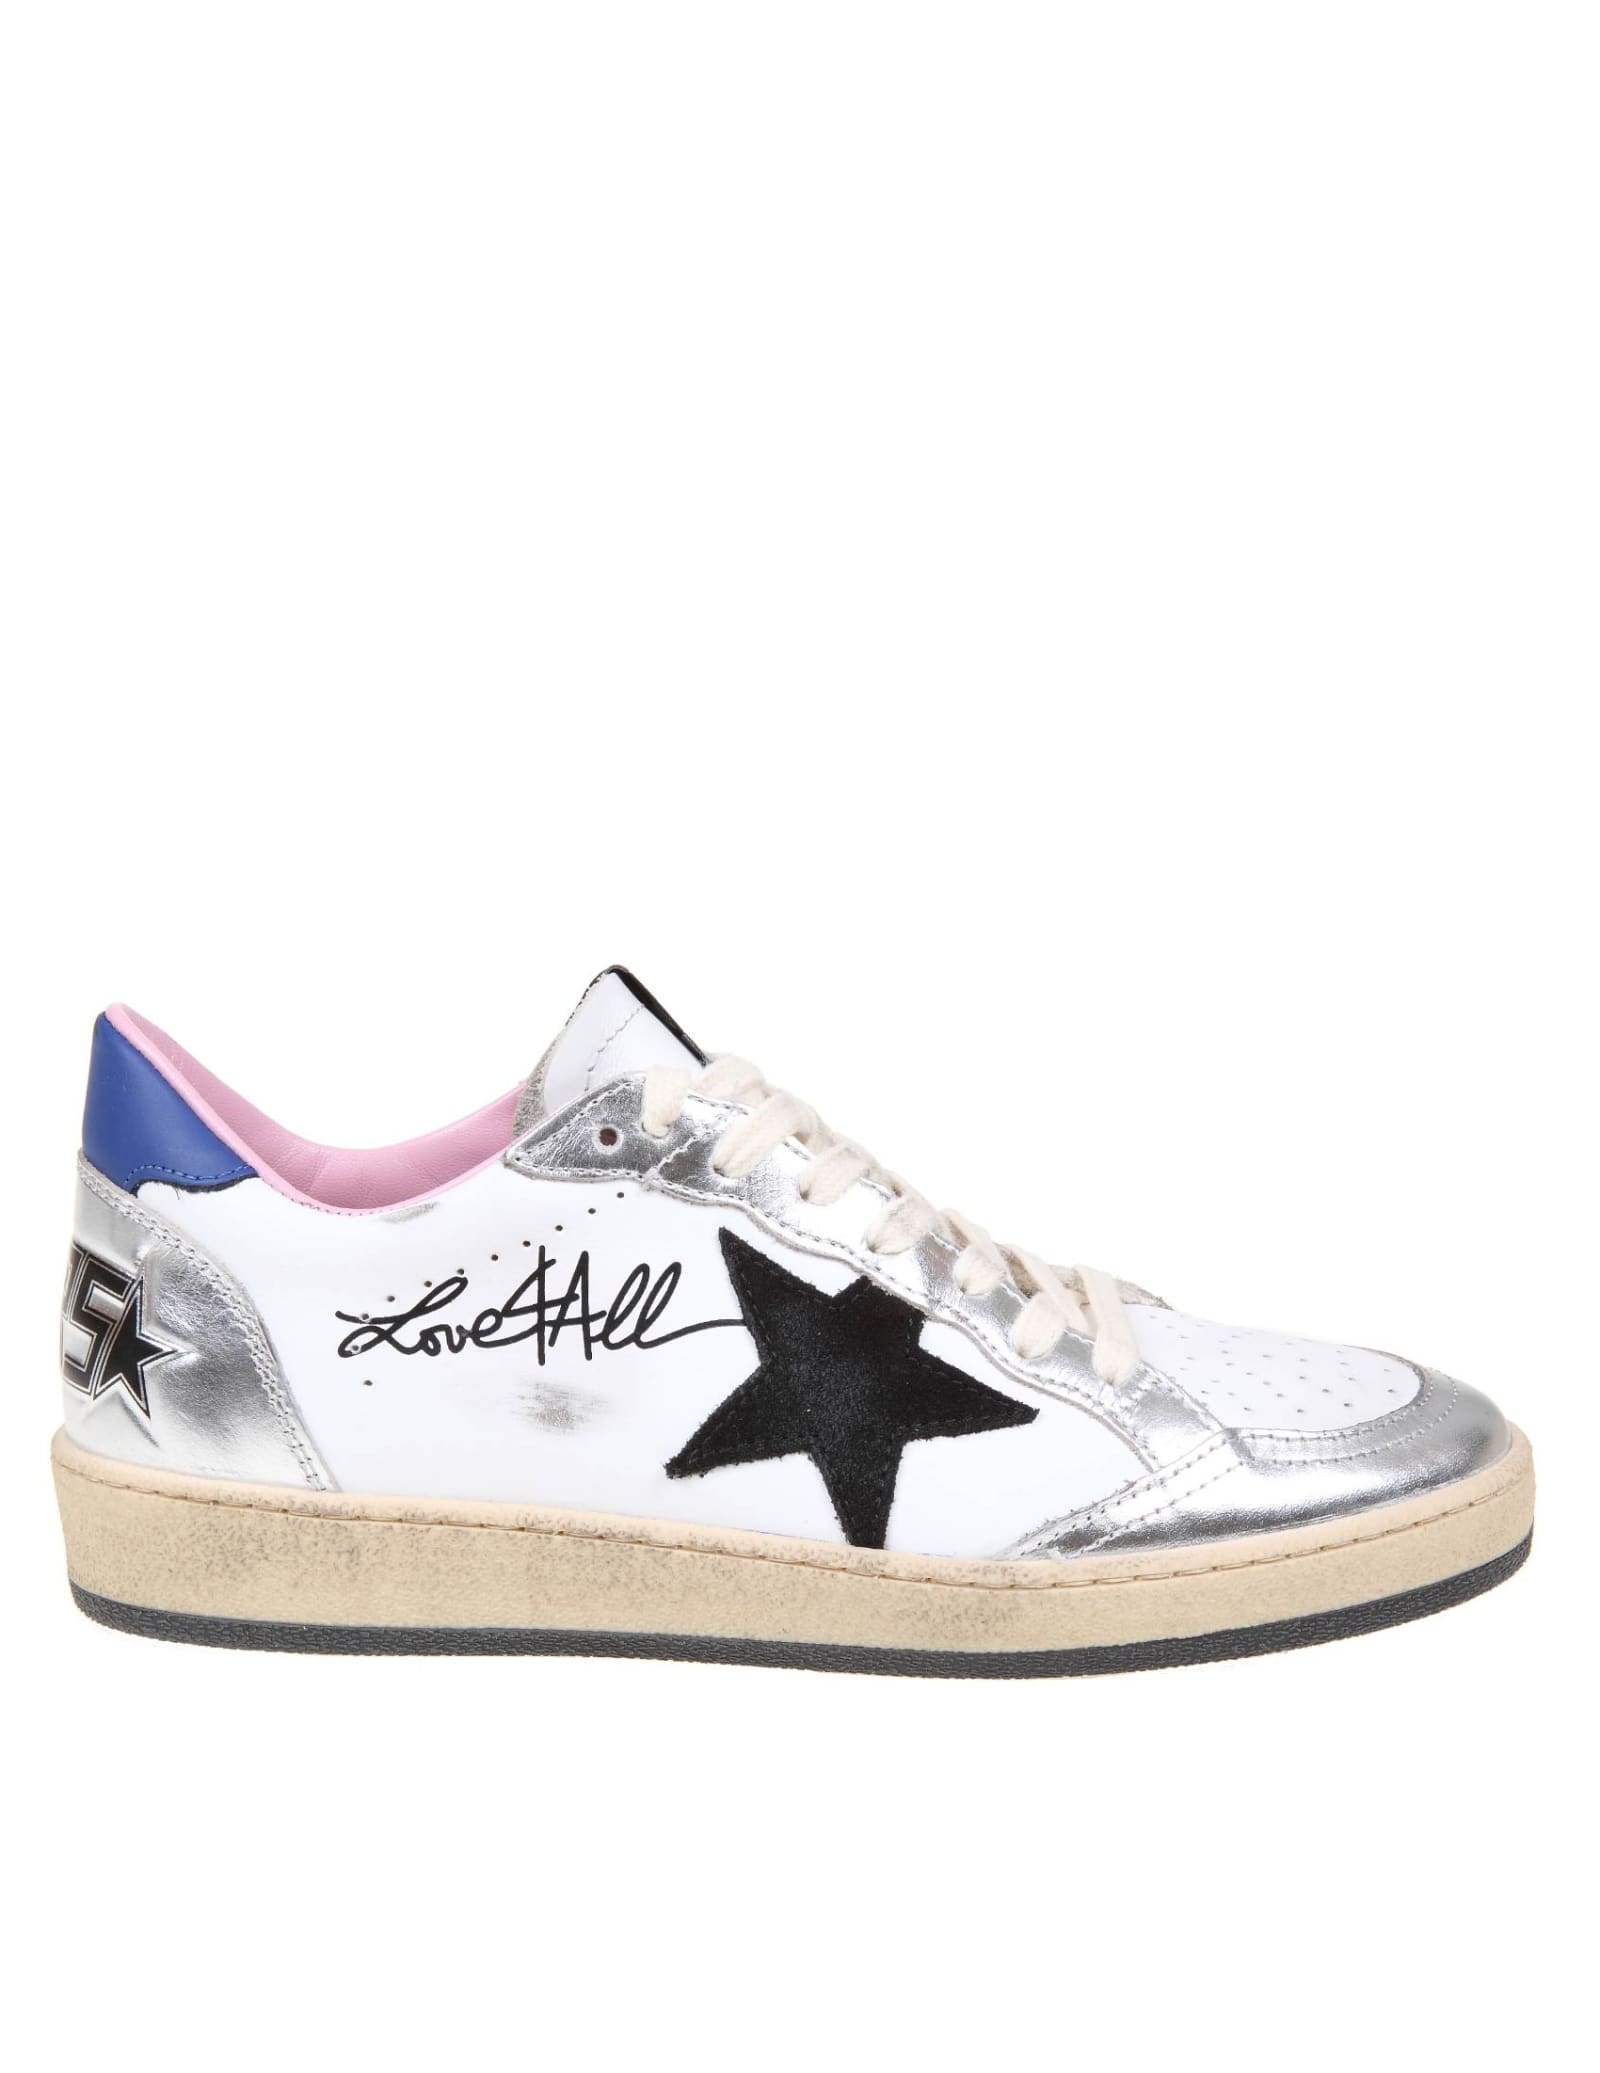 Buy Golden Goose Ballstar White And Silver Laminated Sneakers online, shop Golden Goose shoes with free shipping